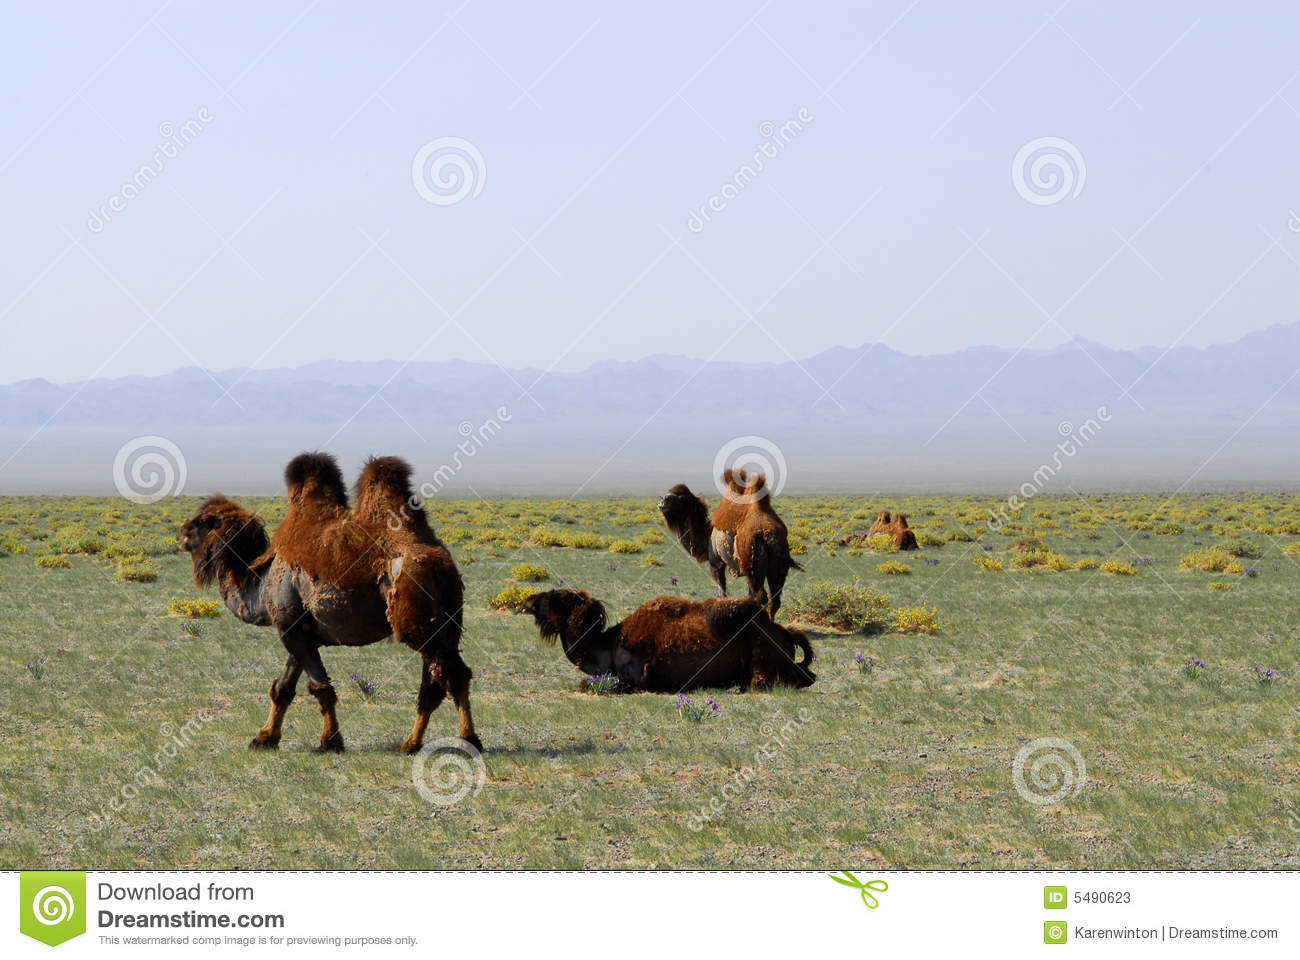 Camels on the steppes, Mongolia